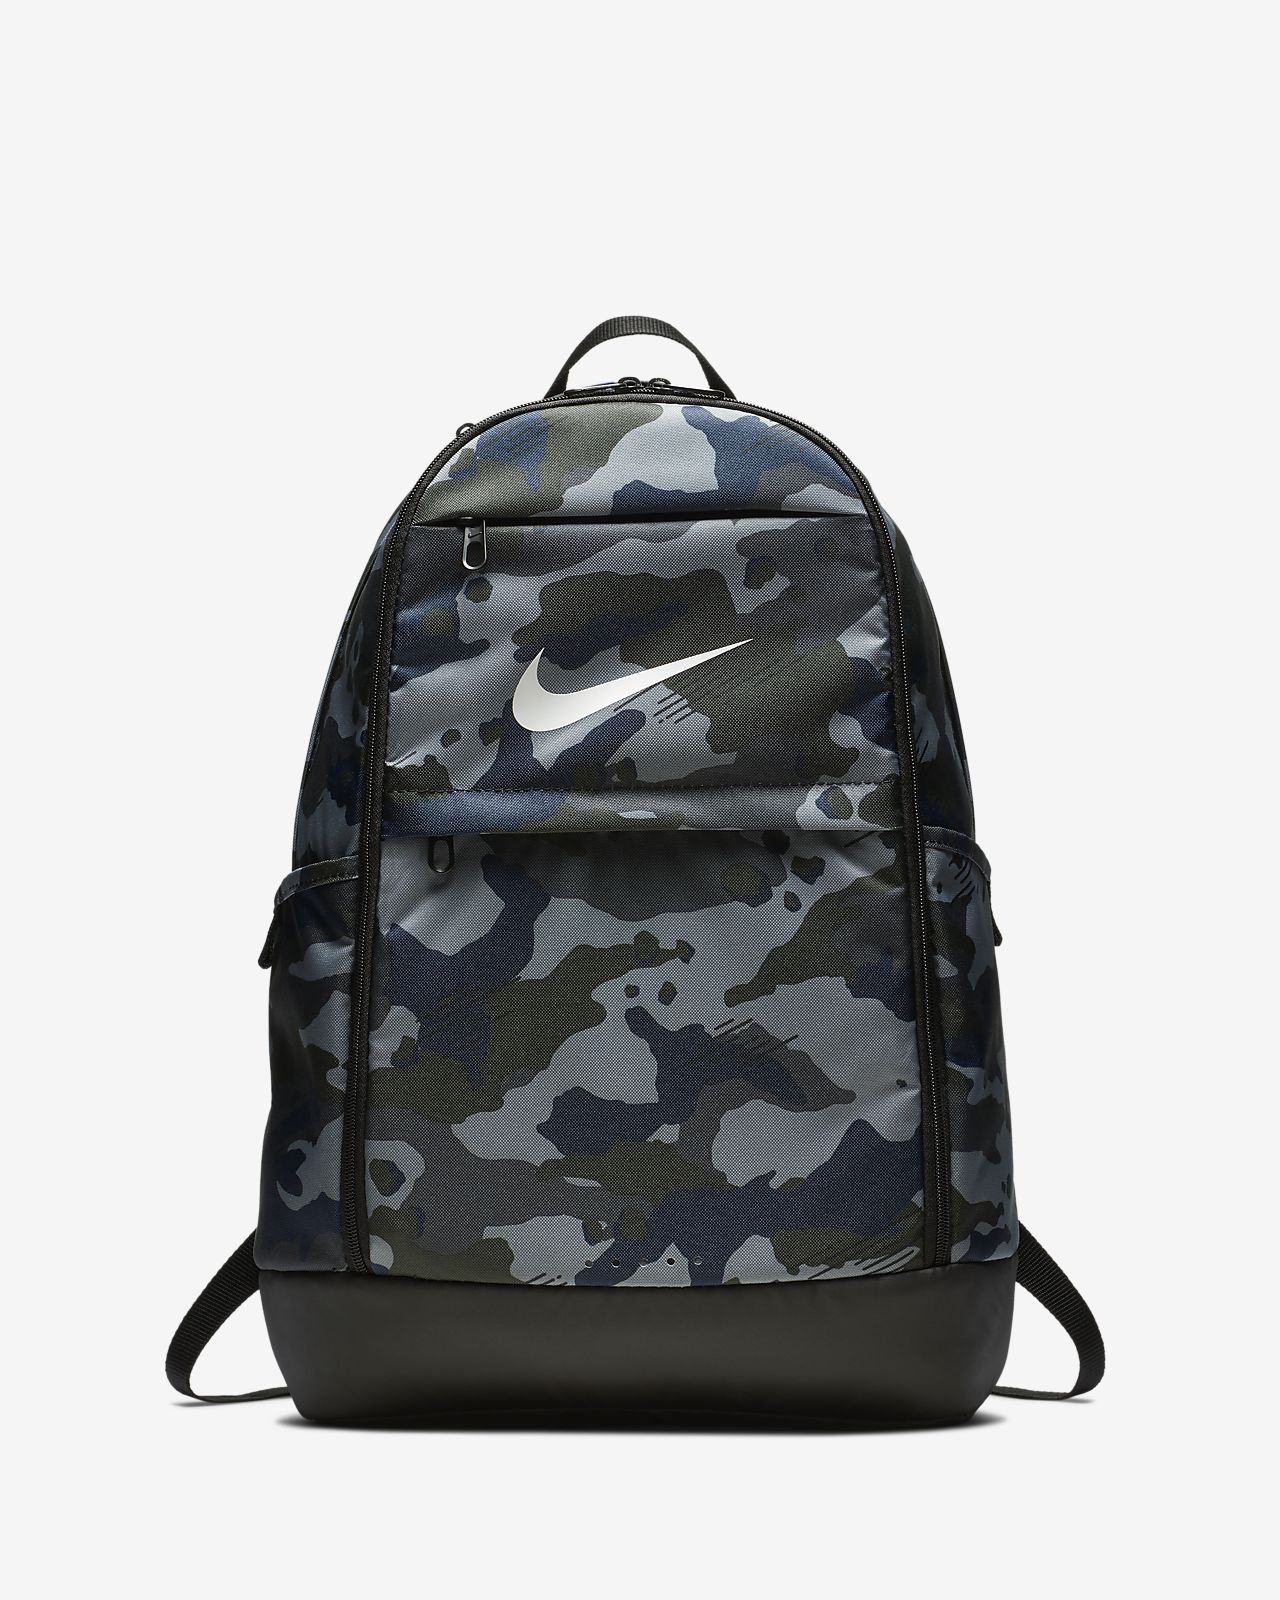 4dcb2e4038 Nike Brasilia Training Backpack (Extra Large). Nike.com